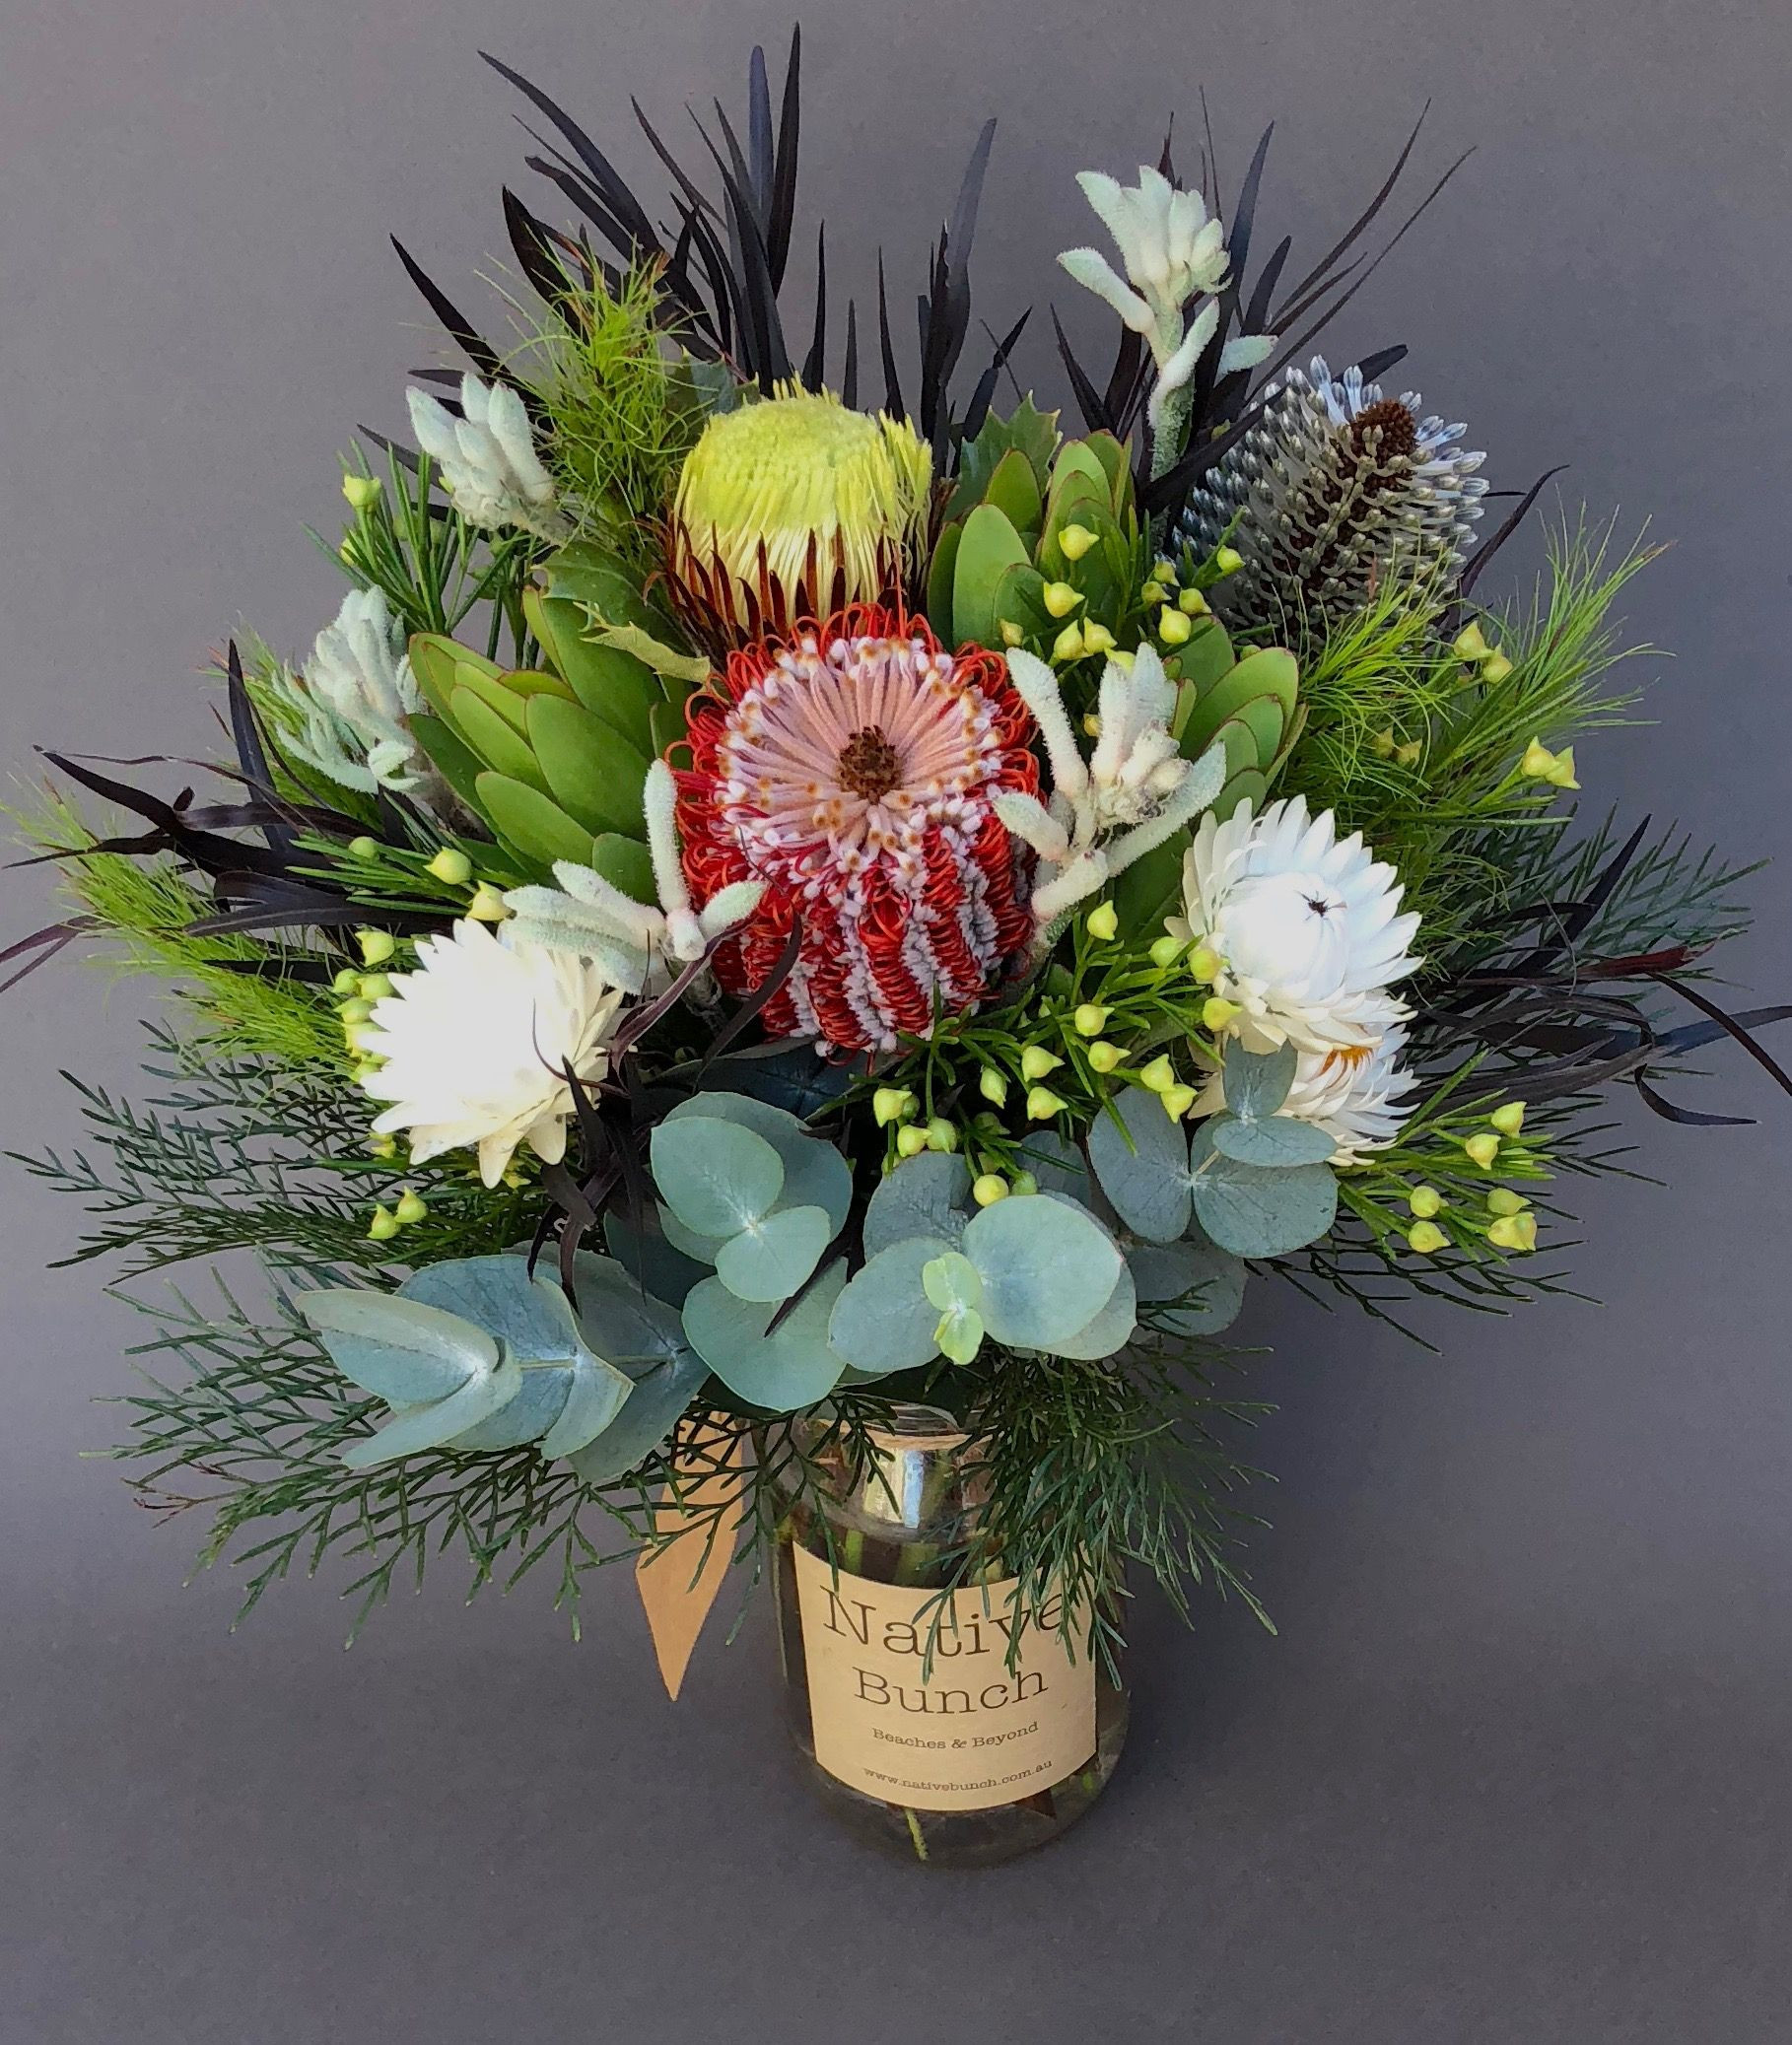 Native Flower posy of Banksia coccinea Dryandra Banksia hinchinbrook bud Waxflower lemon drop